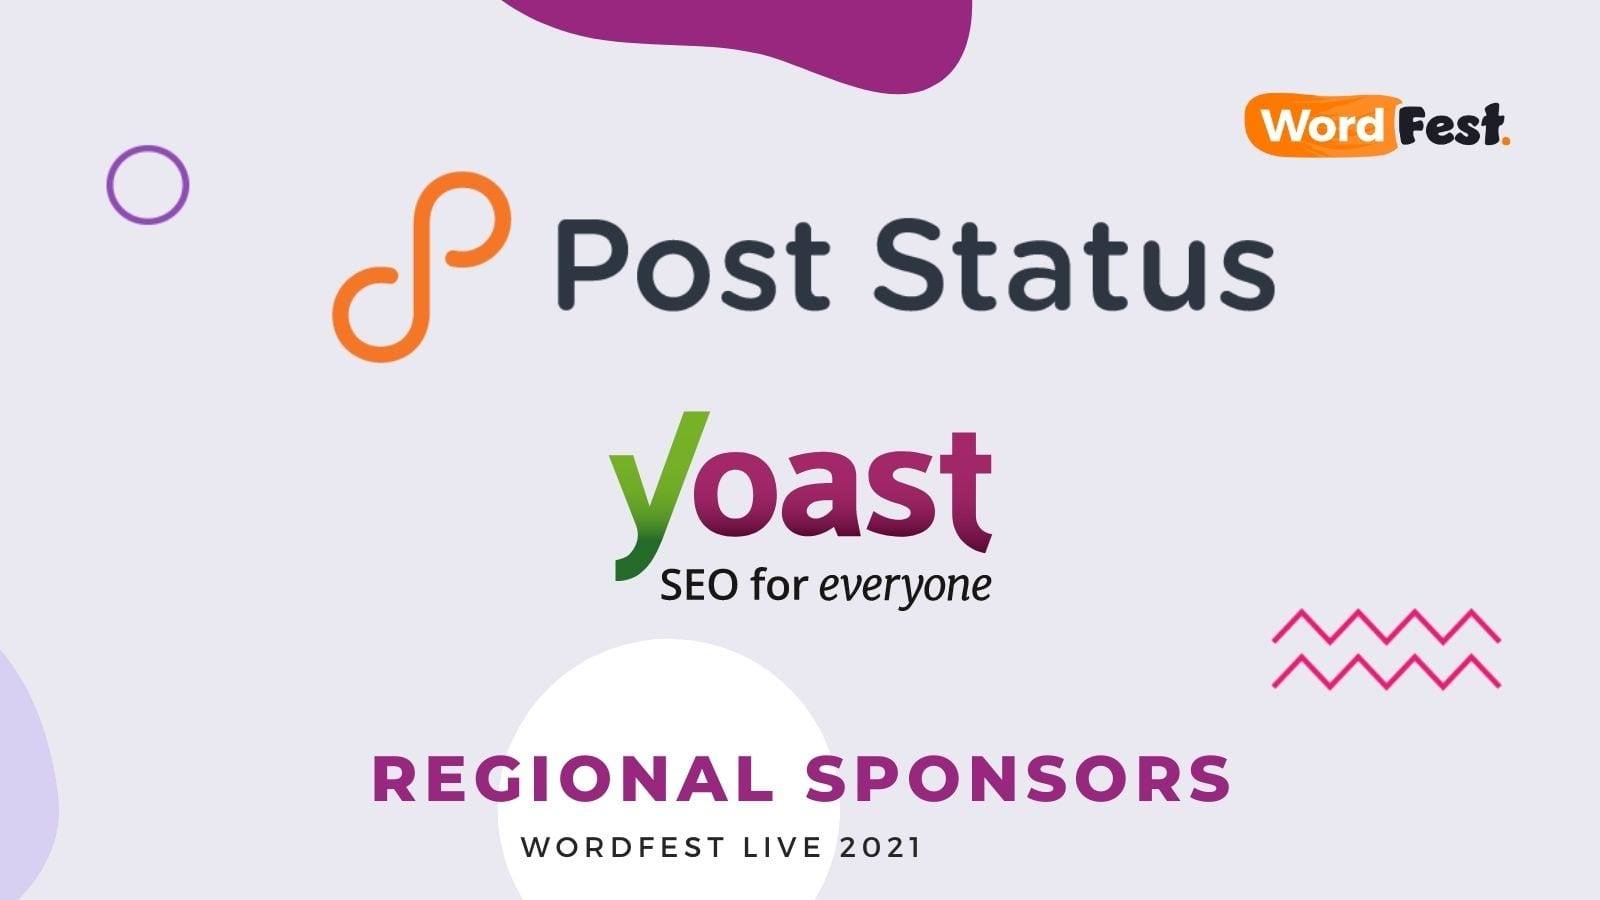 WordFest Live 2021 Sponsors - Post Status & Yoast